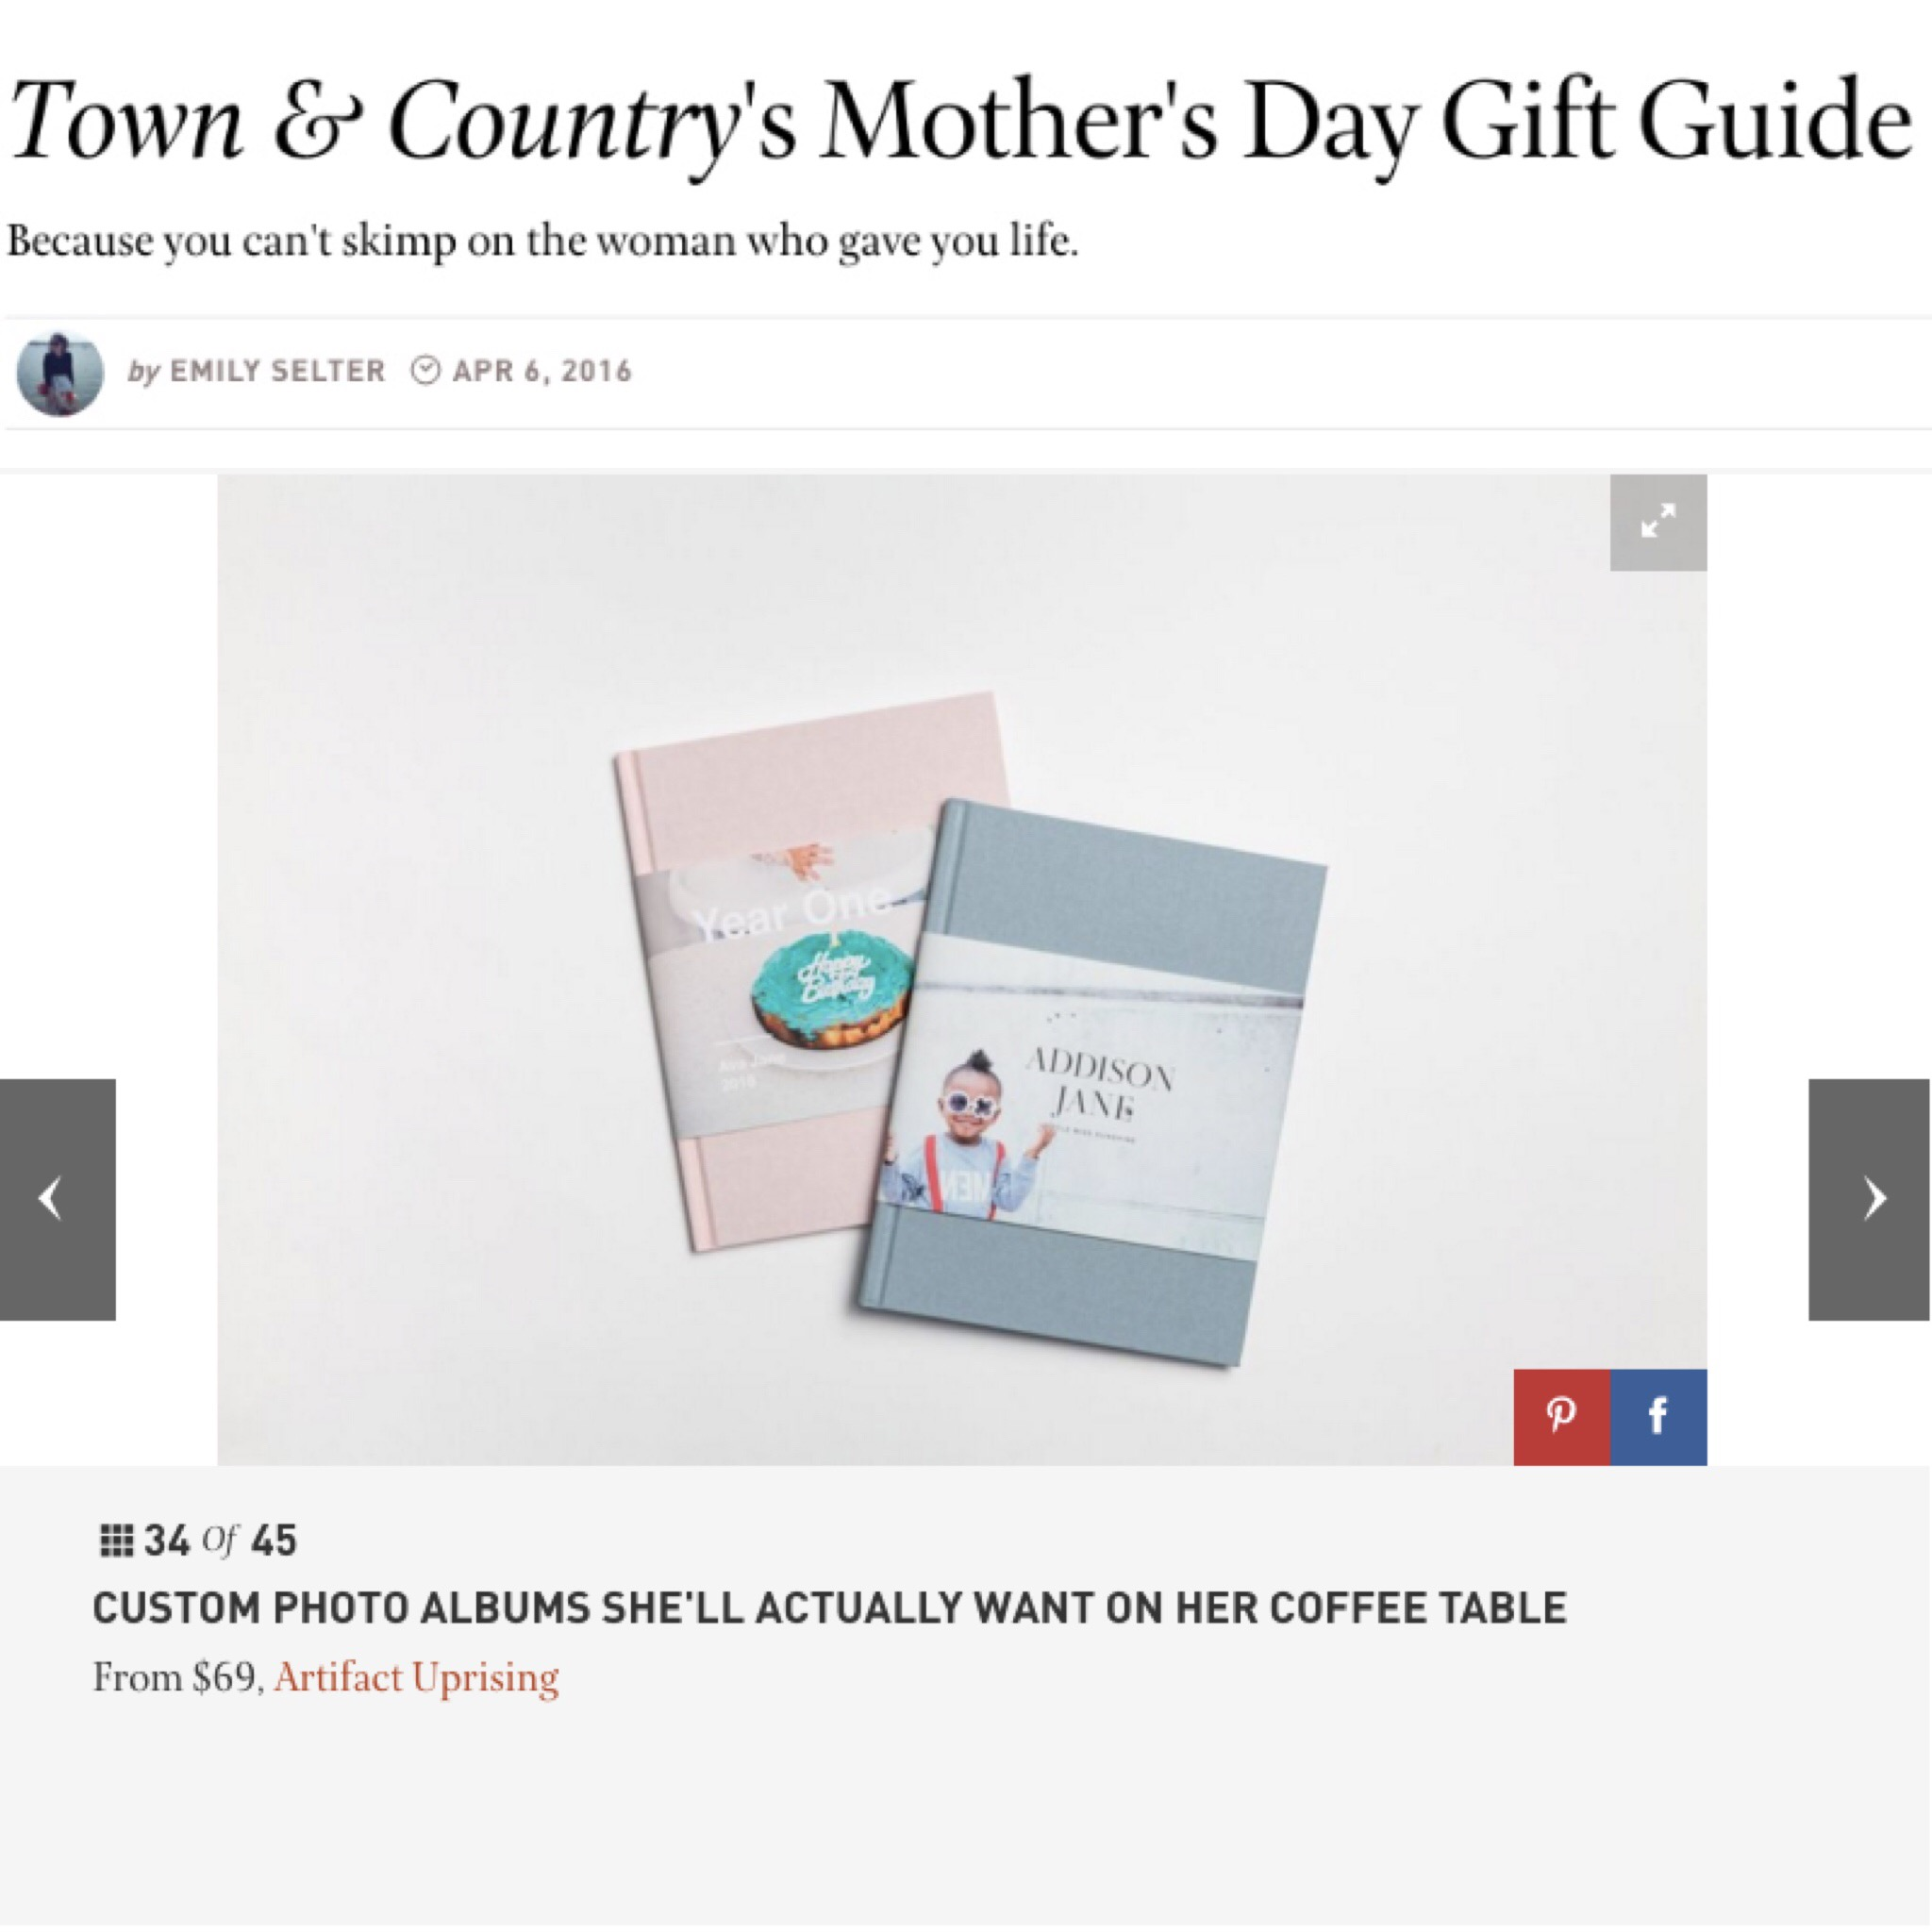 Artifact Uprising made it in the Town & Country's Mother's Day Gift Guide.